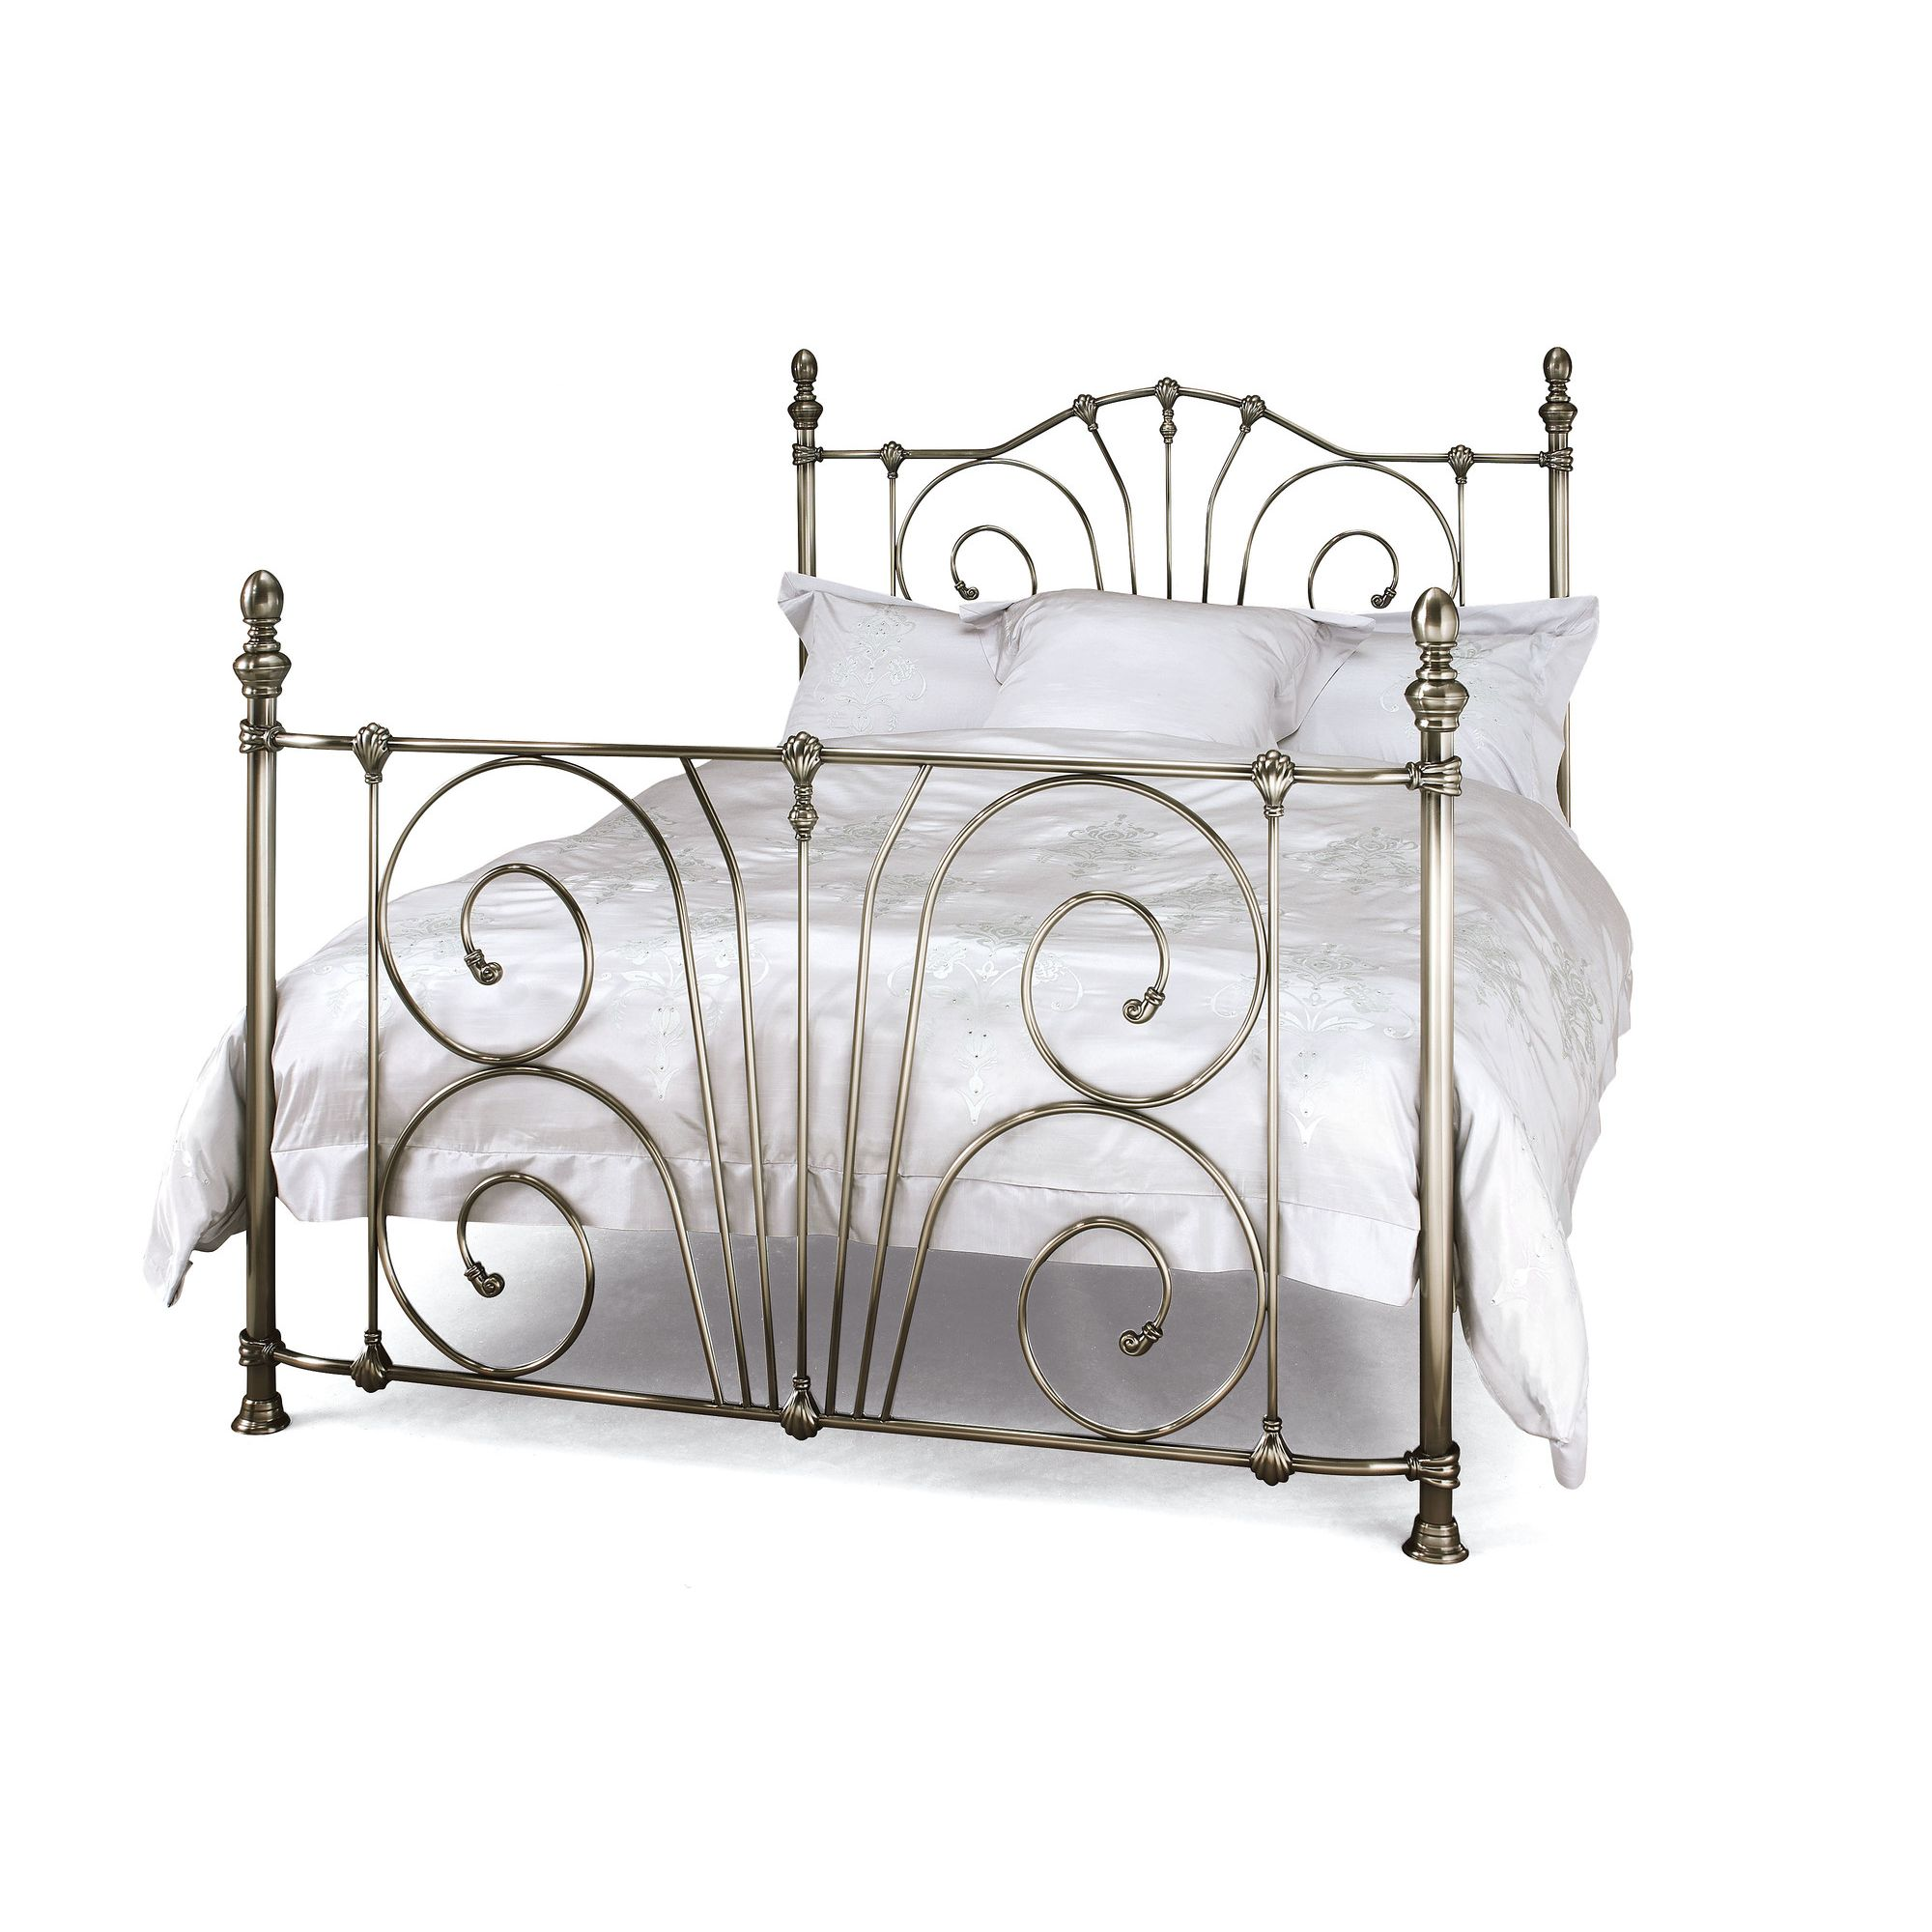 Serene Furnishings Jessica Bed Frame - Small Double - Antique Nickel at Tescos Direct